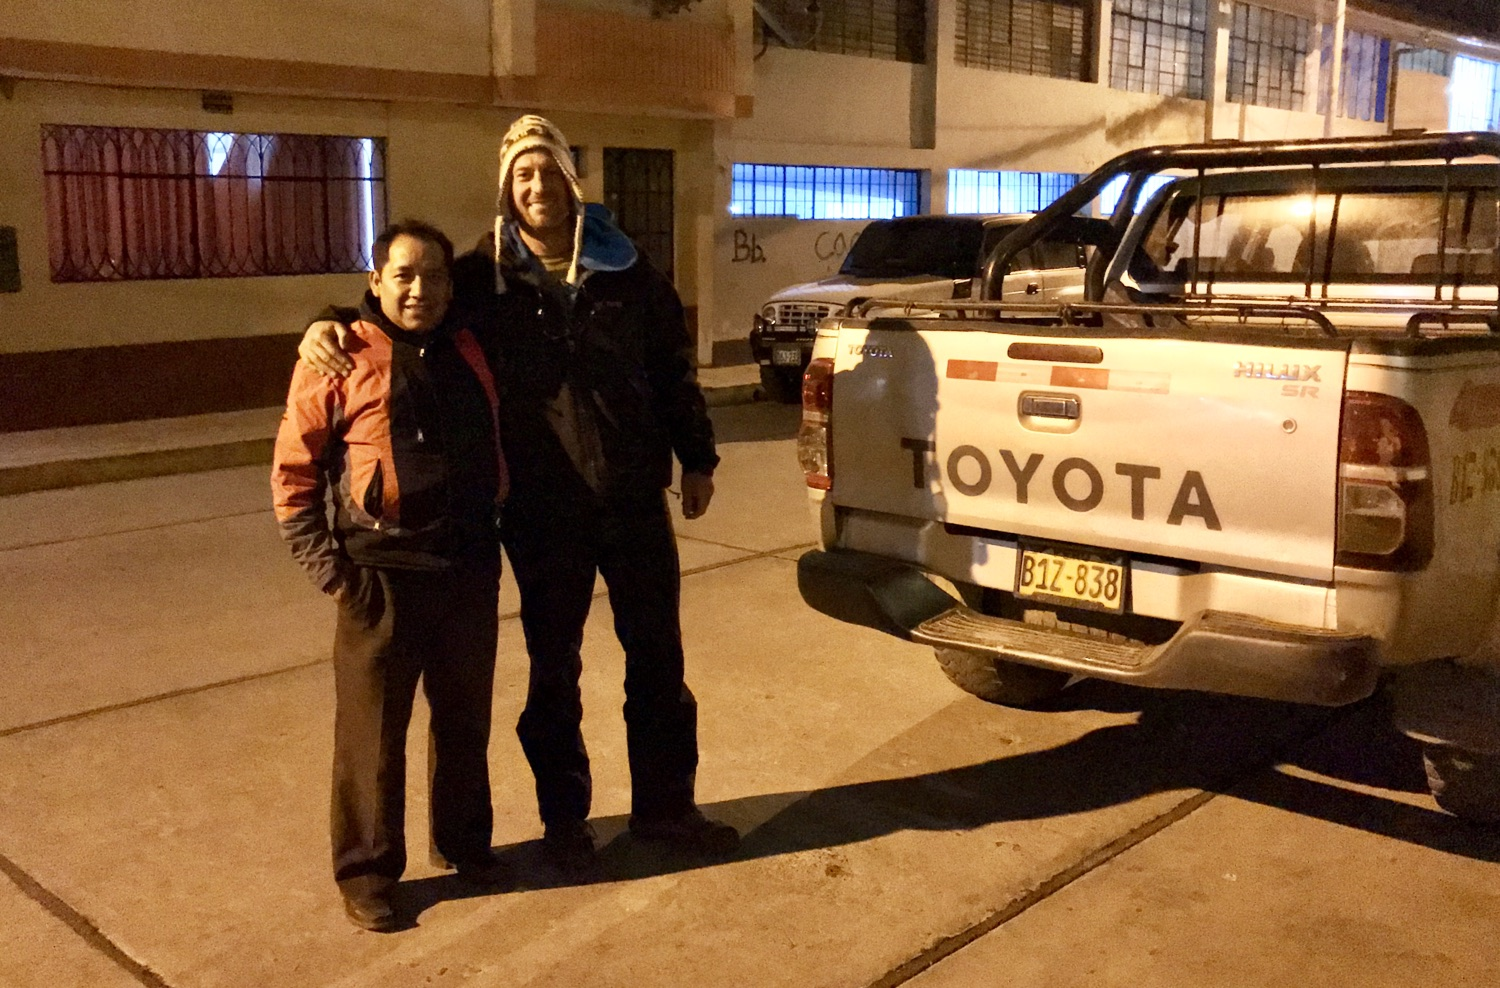 Fernando and his trusty Toyota Hilux have taken us many places down here.